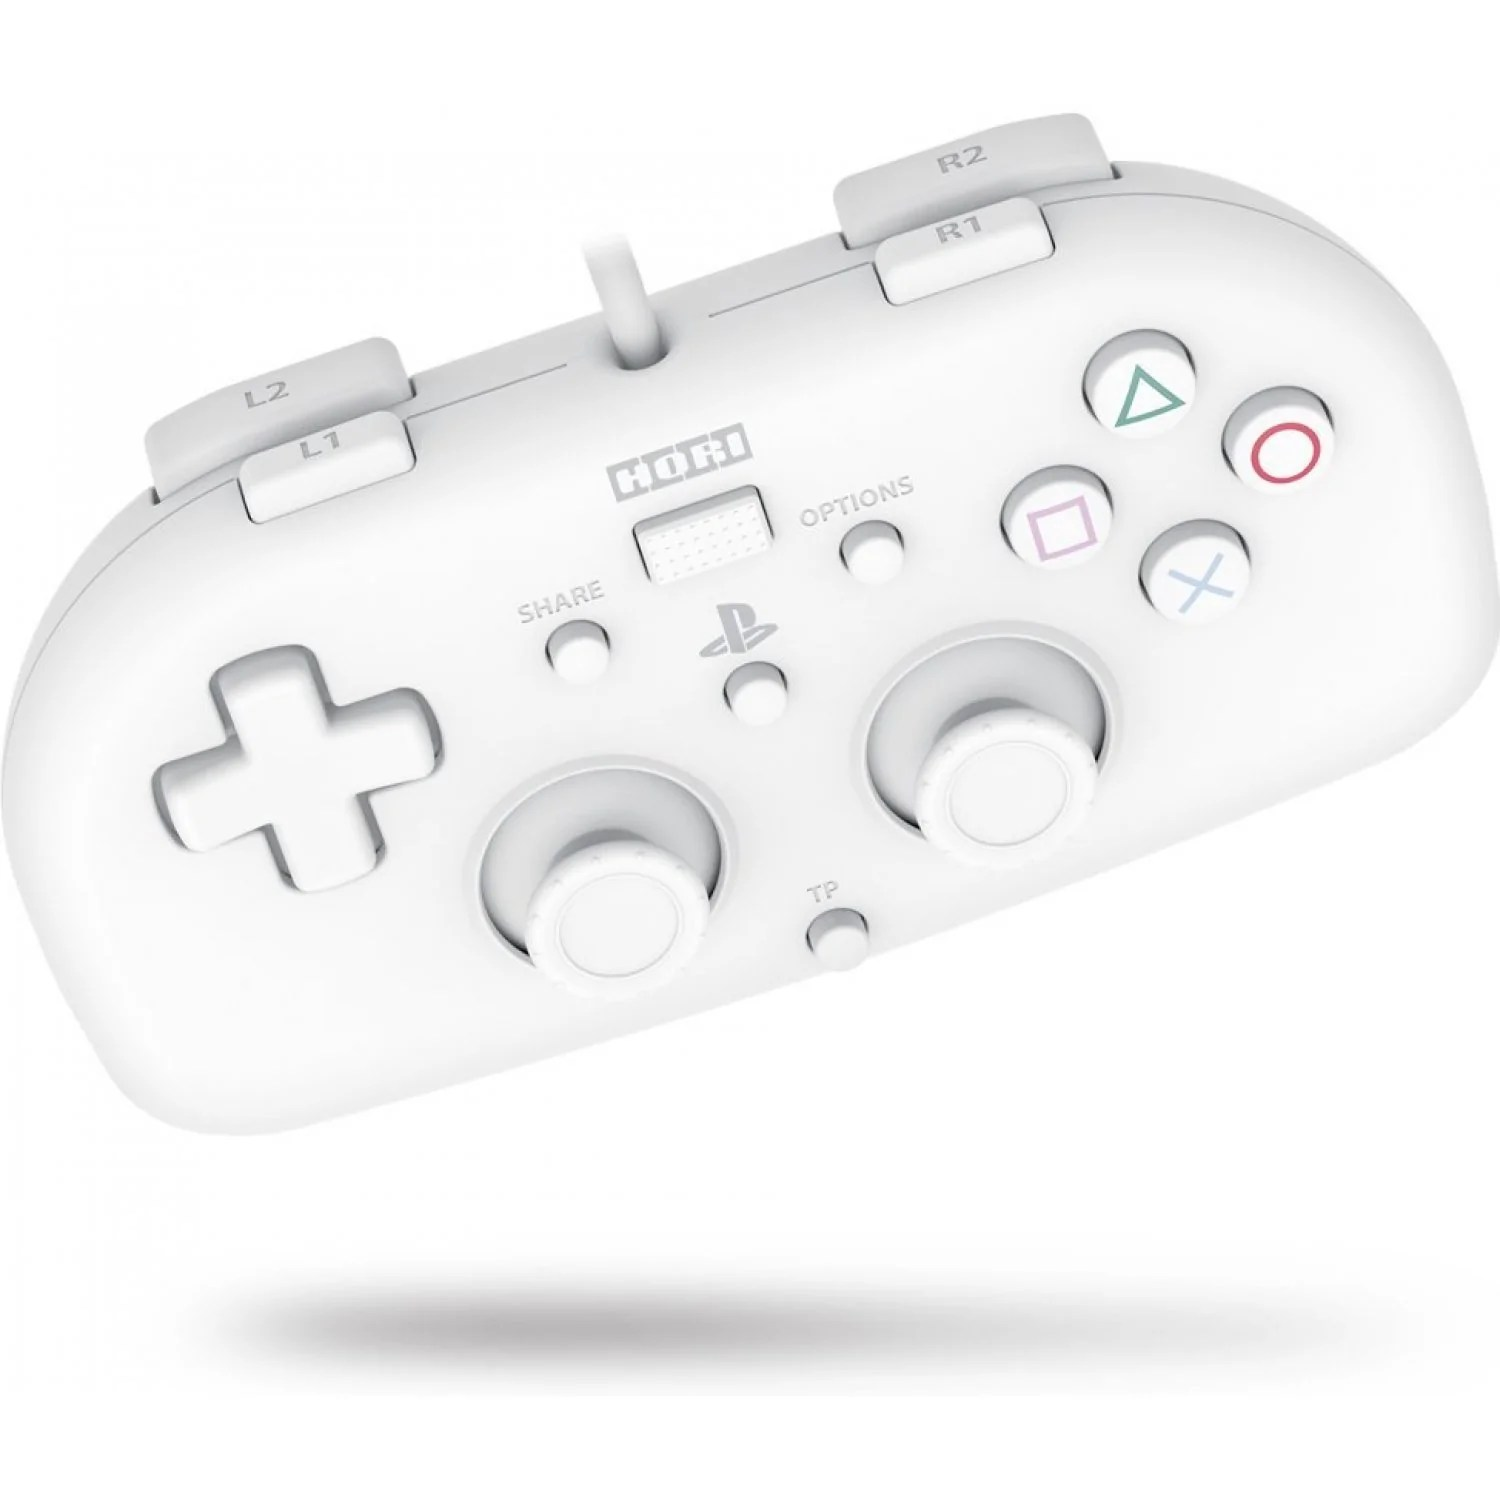 Hori wired controller light white controller for ps4 shopitree